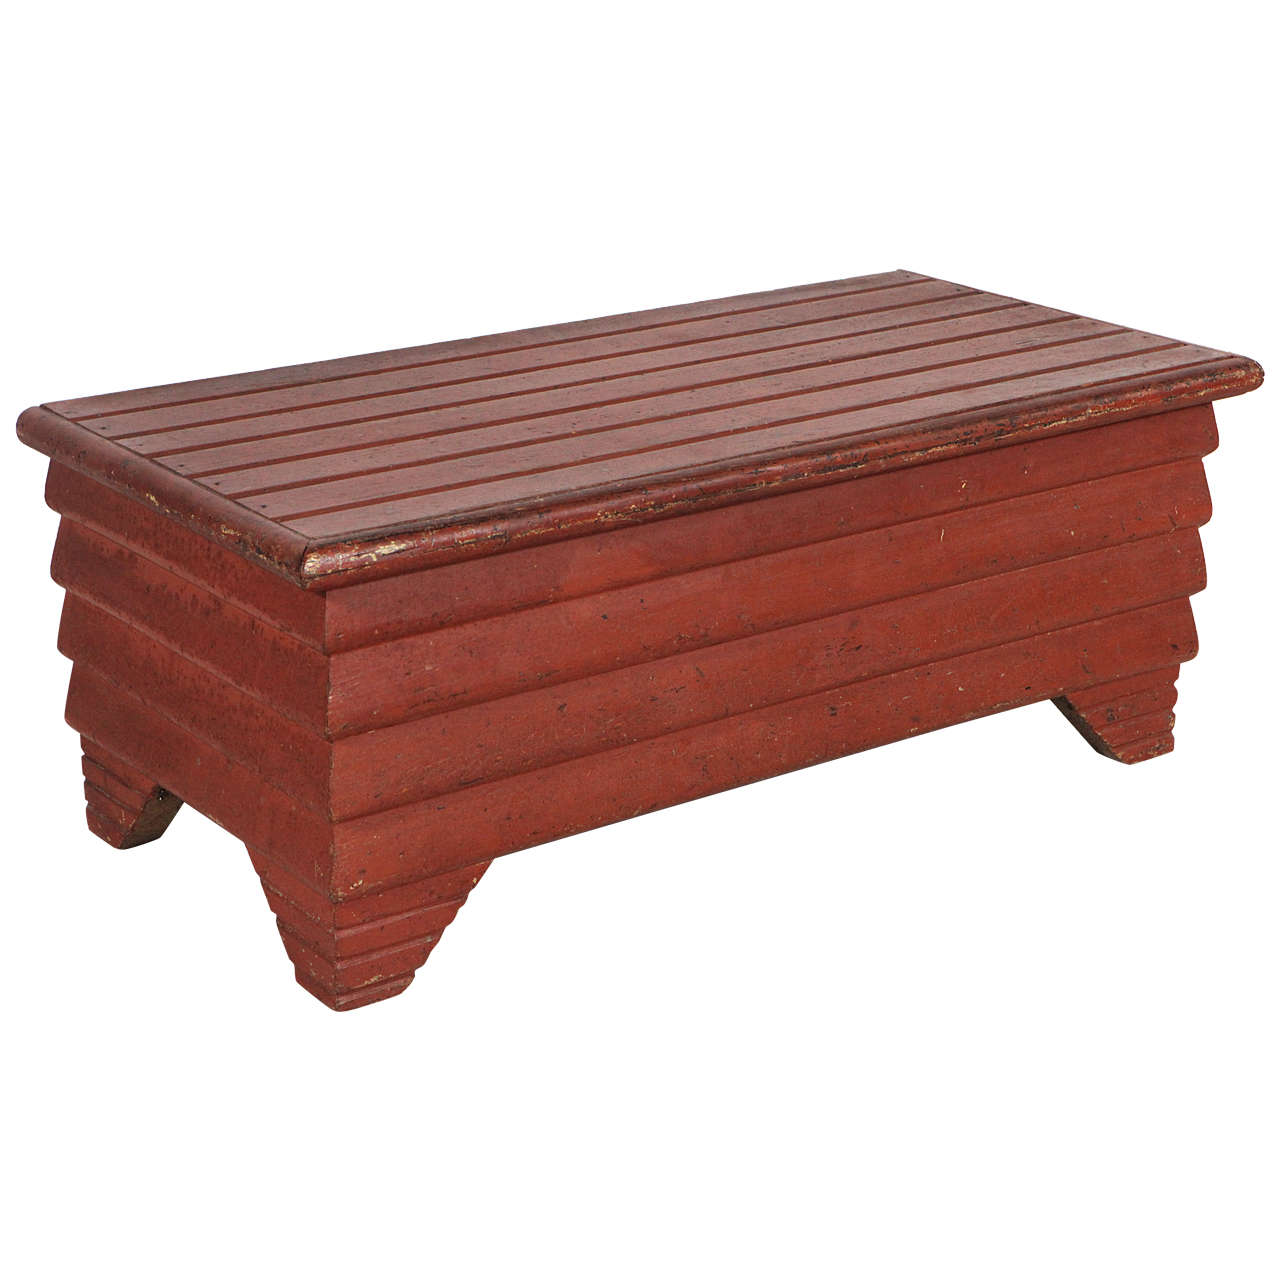 Red Slatted Folk Art Style Bench Trunk At 1stdibs